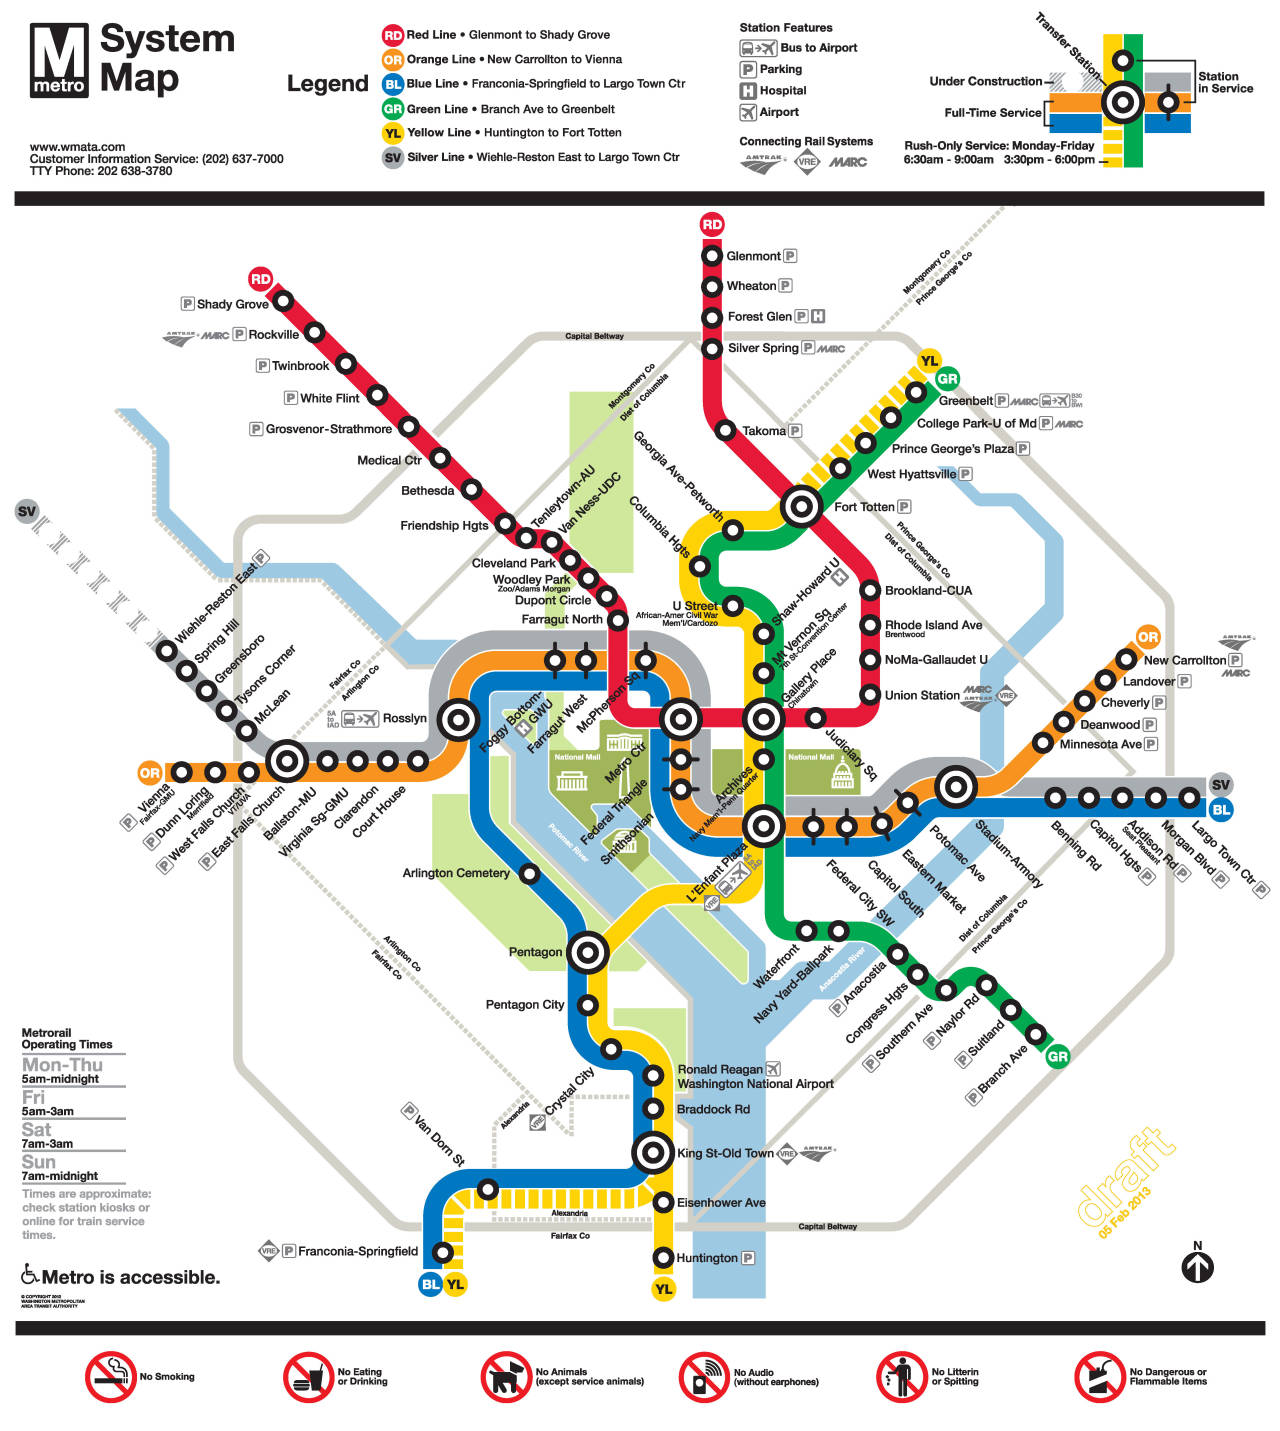 "Future Map: Washington, DC ""Silver Line"" Draft Map Long time readers will be aware of my low opinion of the Washington DC Metro Rail map — here's a fairly scathing review of the ""Rush+"" map (March 2012, 2.5 stars) to refresh your memory. It looks like WMATA is preparing for the opening of the Silver Line and has put a draft version of a new map up on MindMixer for comments. According to the blurb there, the route lines are now thinner and station names are now treated more consistently. The other obvious visual change is the introduction of a new station symbol (one with thin ""whisker"" extensions) to accommodate the three routes that will now run across the middle of the map. Let's discuss all of these in turn. The route lines may be thinner, but only barely. Probably not enough to make any useful difference to the map. While the playful thickness of the route lines are very much an identifying feauture of the WMATA map, it's now becoming a liability to its usefulness. The extra space required to accommodate the Silver Line through Foggy Bottom and Farragut West means that the six stations on the northwest leg of the Red Line inside the District have to be crammed into a ridiculously tight space — far tighter than anywhere else on the map. I always feel that a diagrammatic map like this has to strive for even and harmonious spacing across the entire map… and this map simply doesn't do that well any more. The new treatment of station names includes ""consistent street abbreviations across the map"", which should be a good thing: it's always better to choose either ""Avenue"" or ""Ave"" and stick with that choice across the whole map. However, ""Hgts"" is a visually awful abbreviation for ""Heights"" and is included for the sole purpose of making ""Columbia Hgts"" fit on one line without conflicting with the ""Van Ness-UDC"" label. ""Ctr"" is an equally terrible abbreviation for ""Center"", and doesn't actually seem to bring any real space-saving benefits to the map. The new ""whiskered"" station symbol just feels forced and unnecessary to me. It introduces a third station symbol, even though hierarchically, it means exactly the same as the plain station circle that already exists. An elongated ""pill"" symbol with the same cap radius as the normal circle would work a lot better in my opinion. Or — narrow down the route lines until the normal circle symbol can touch all three. At the moment, this map is only a work in progress, but I'm not exactly impressed by any of the new design decisions."